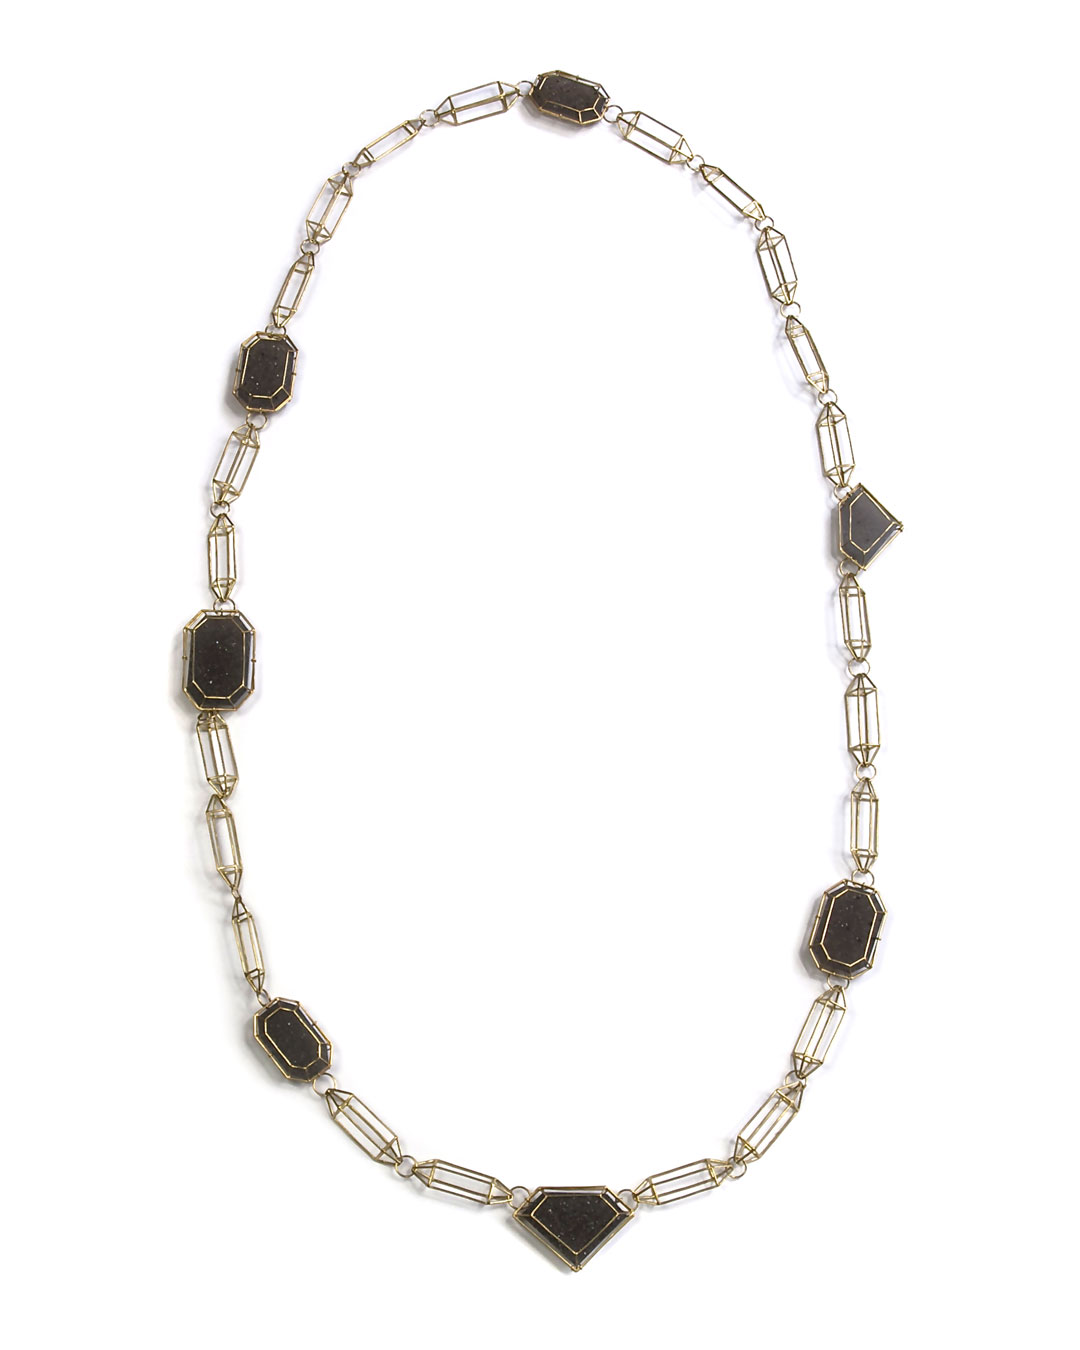 Etsuko Sonobe, untitled, 2006, necklace; 18ct gold, agate, 425 x 200 x 7 mm, €7000